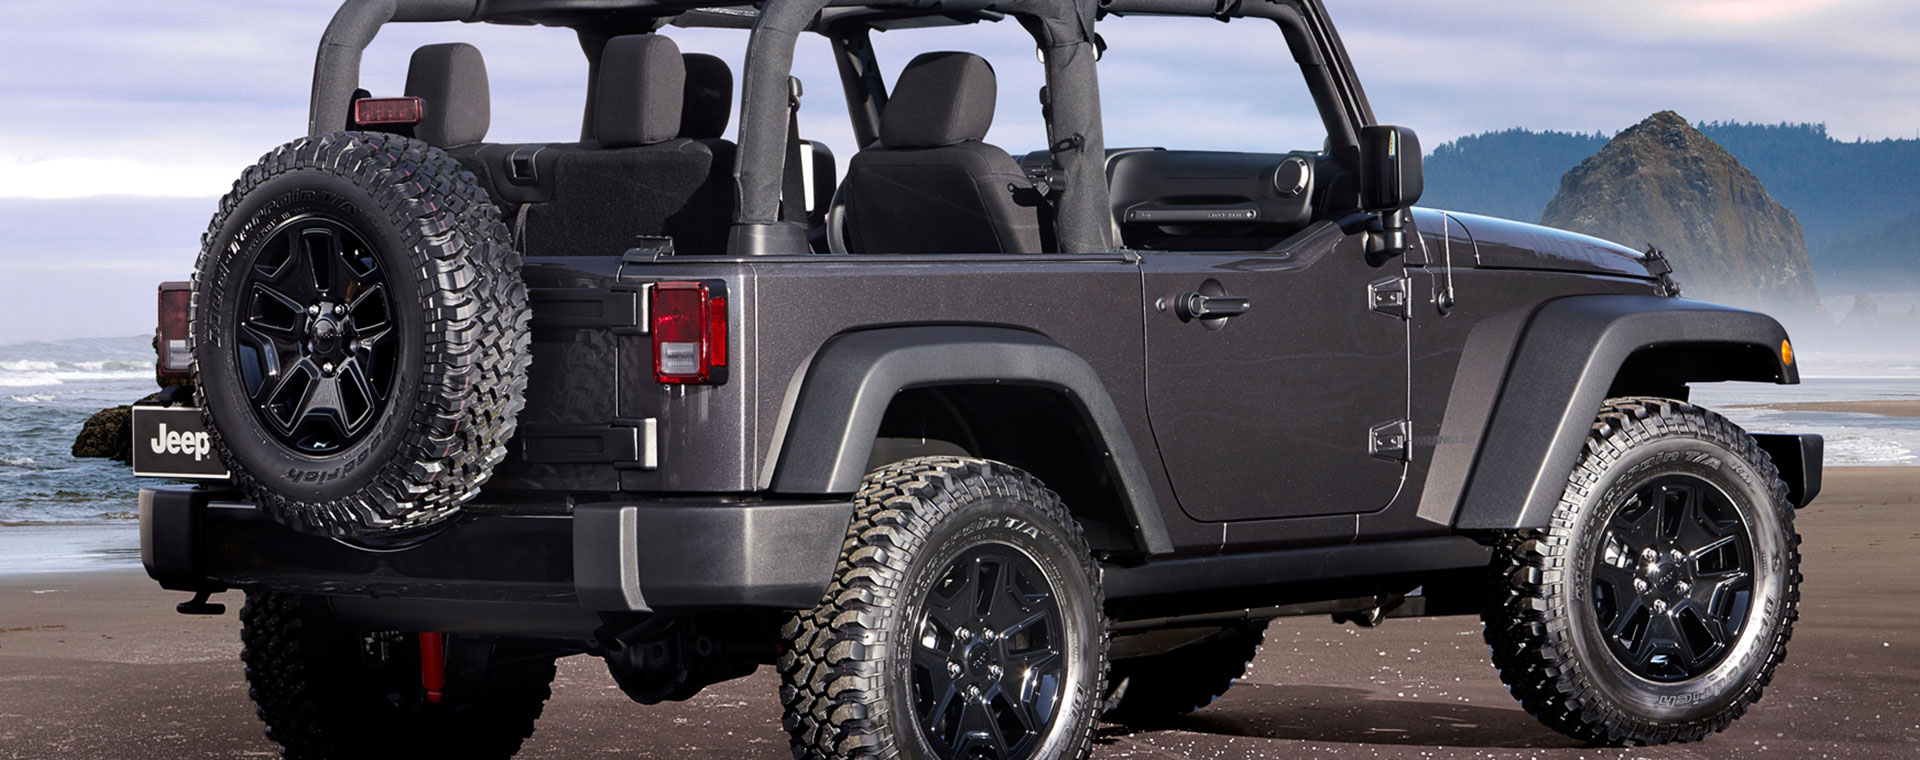 New Wrangler inventory at Quirk Chrysler Jeep